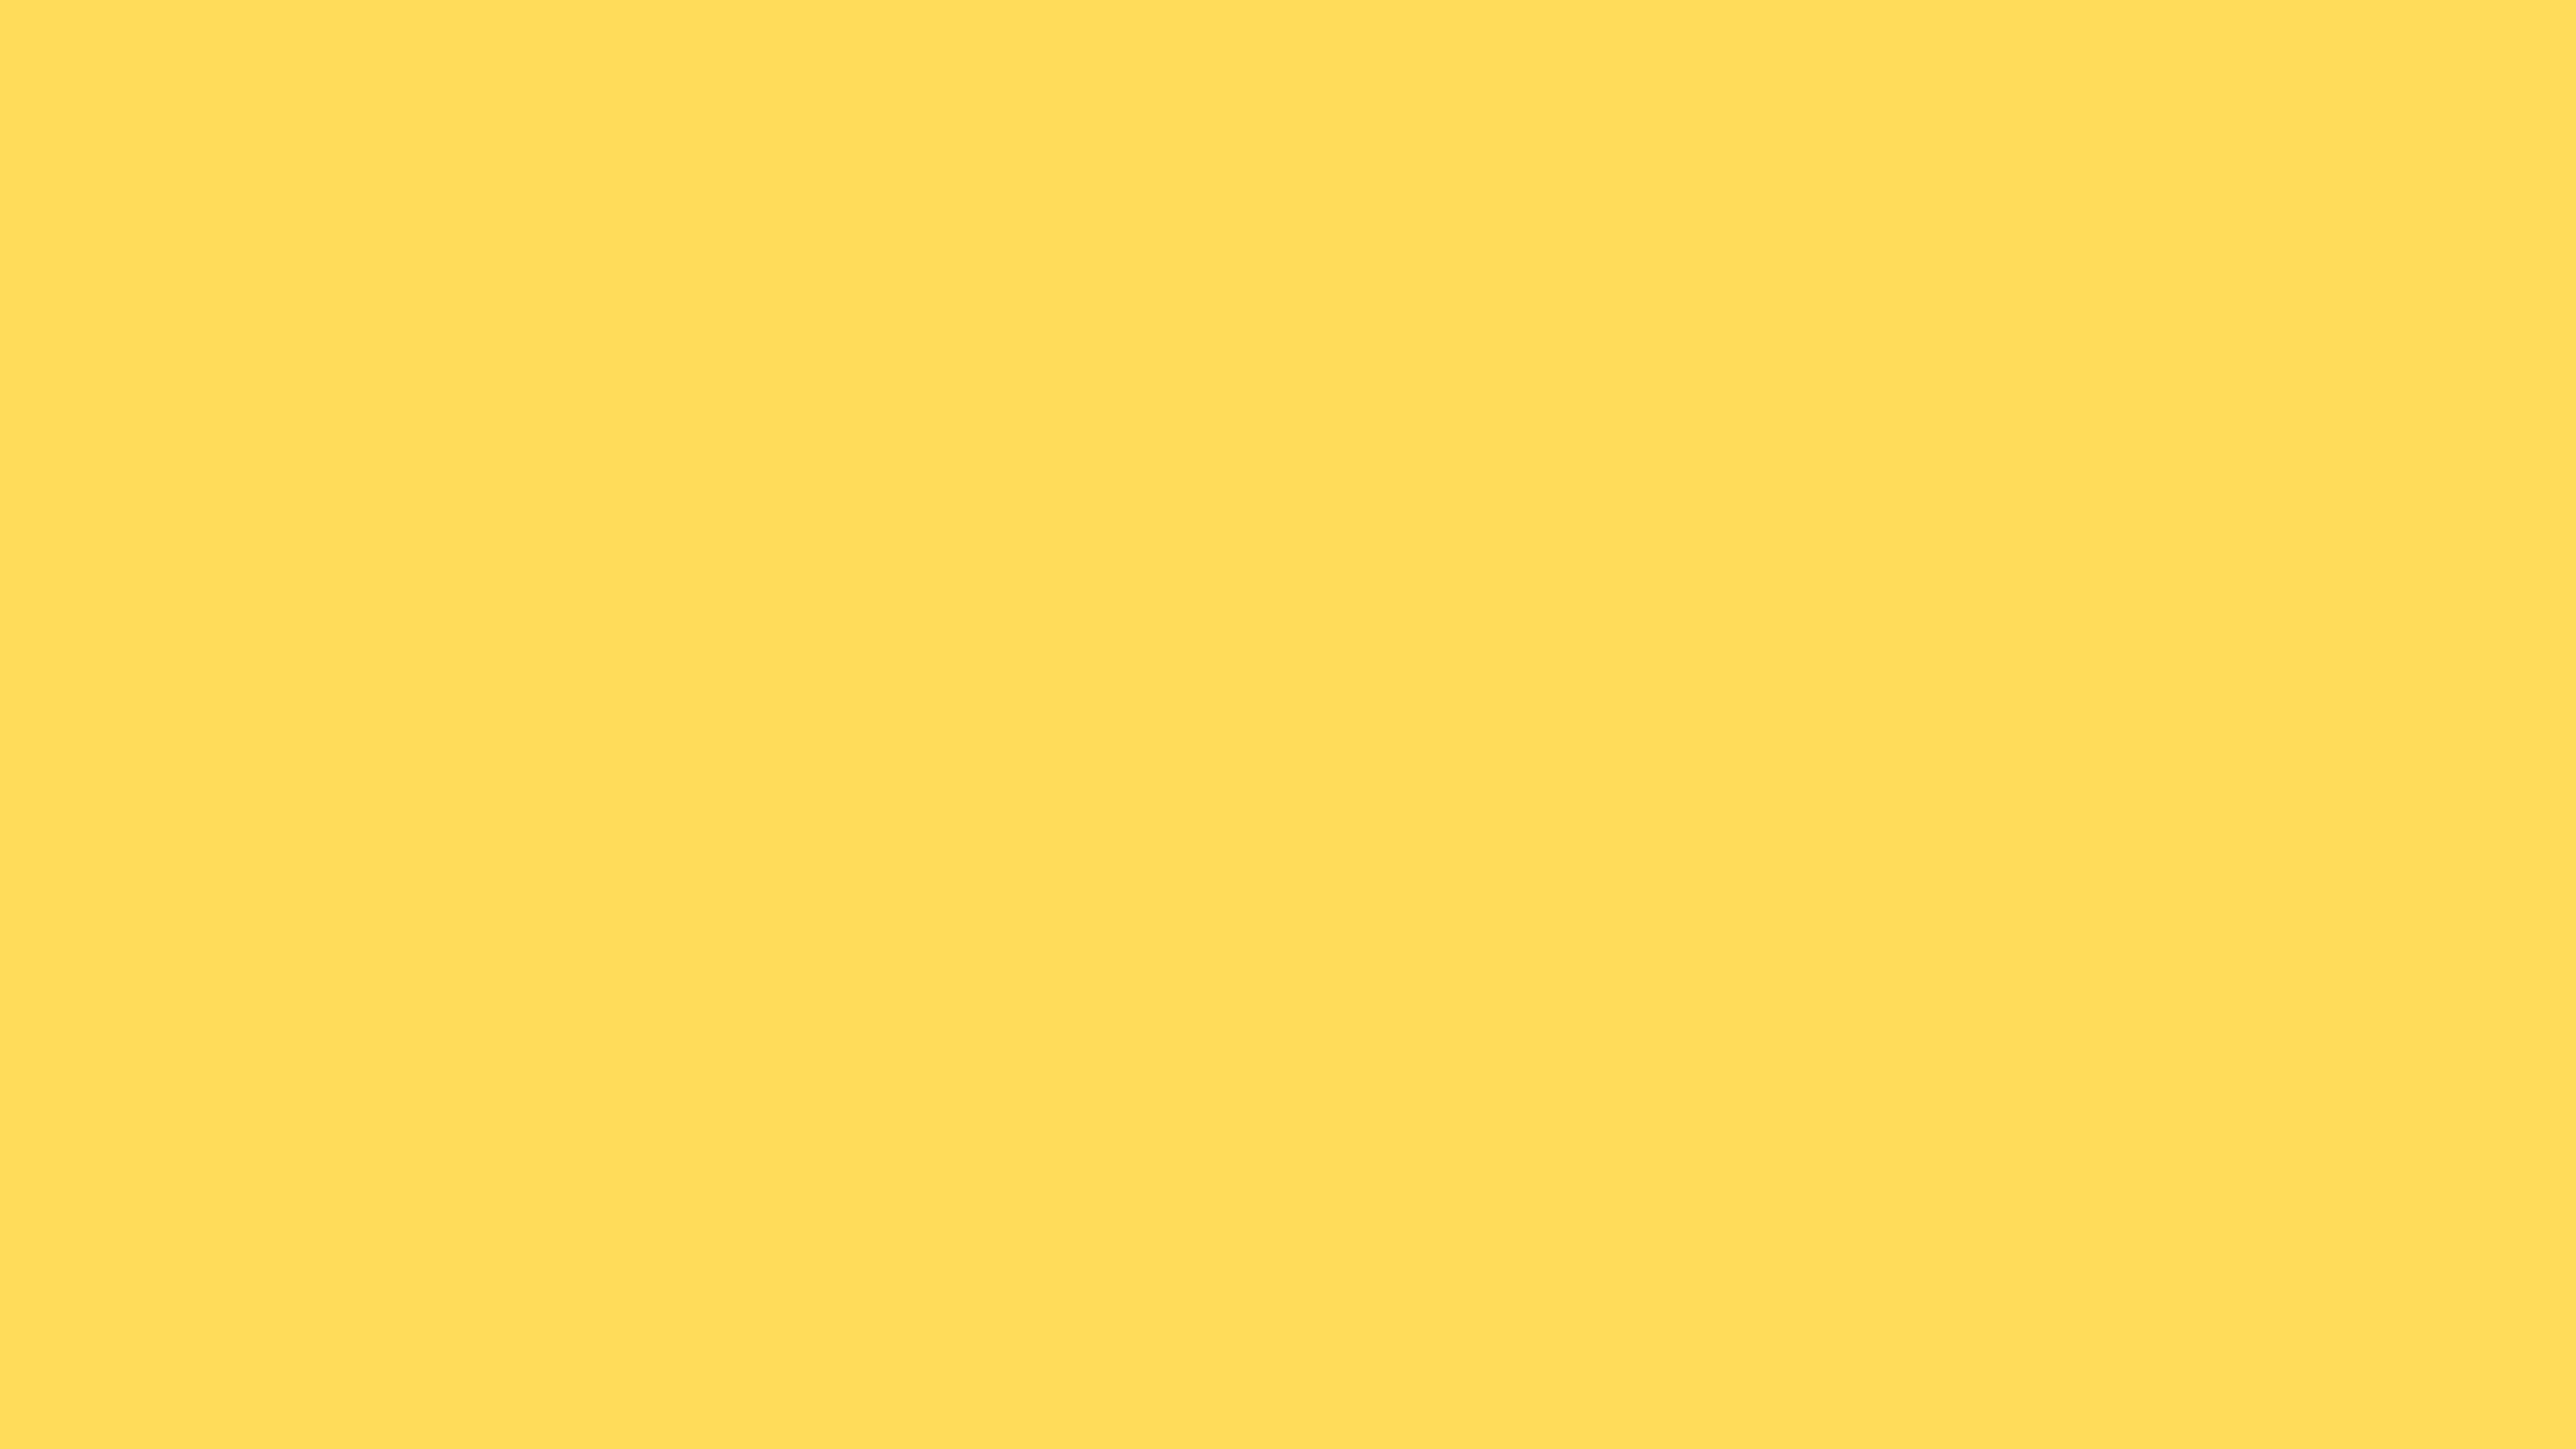 4096x2304 Mustard Solid Color Background